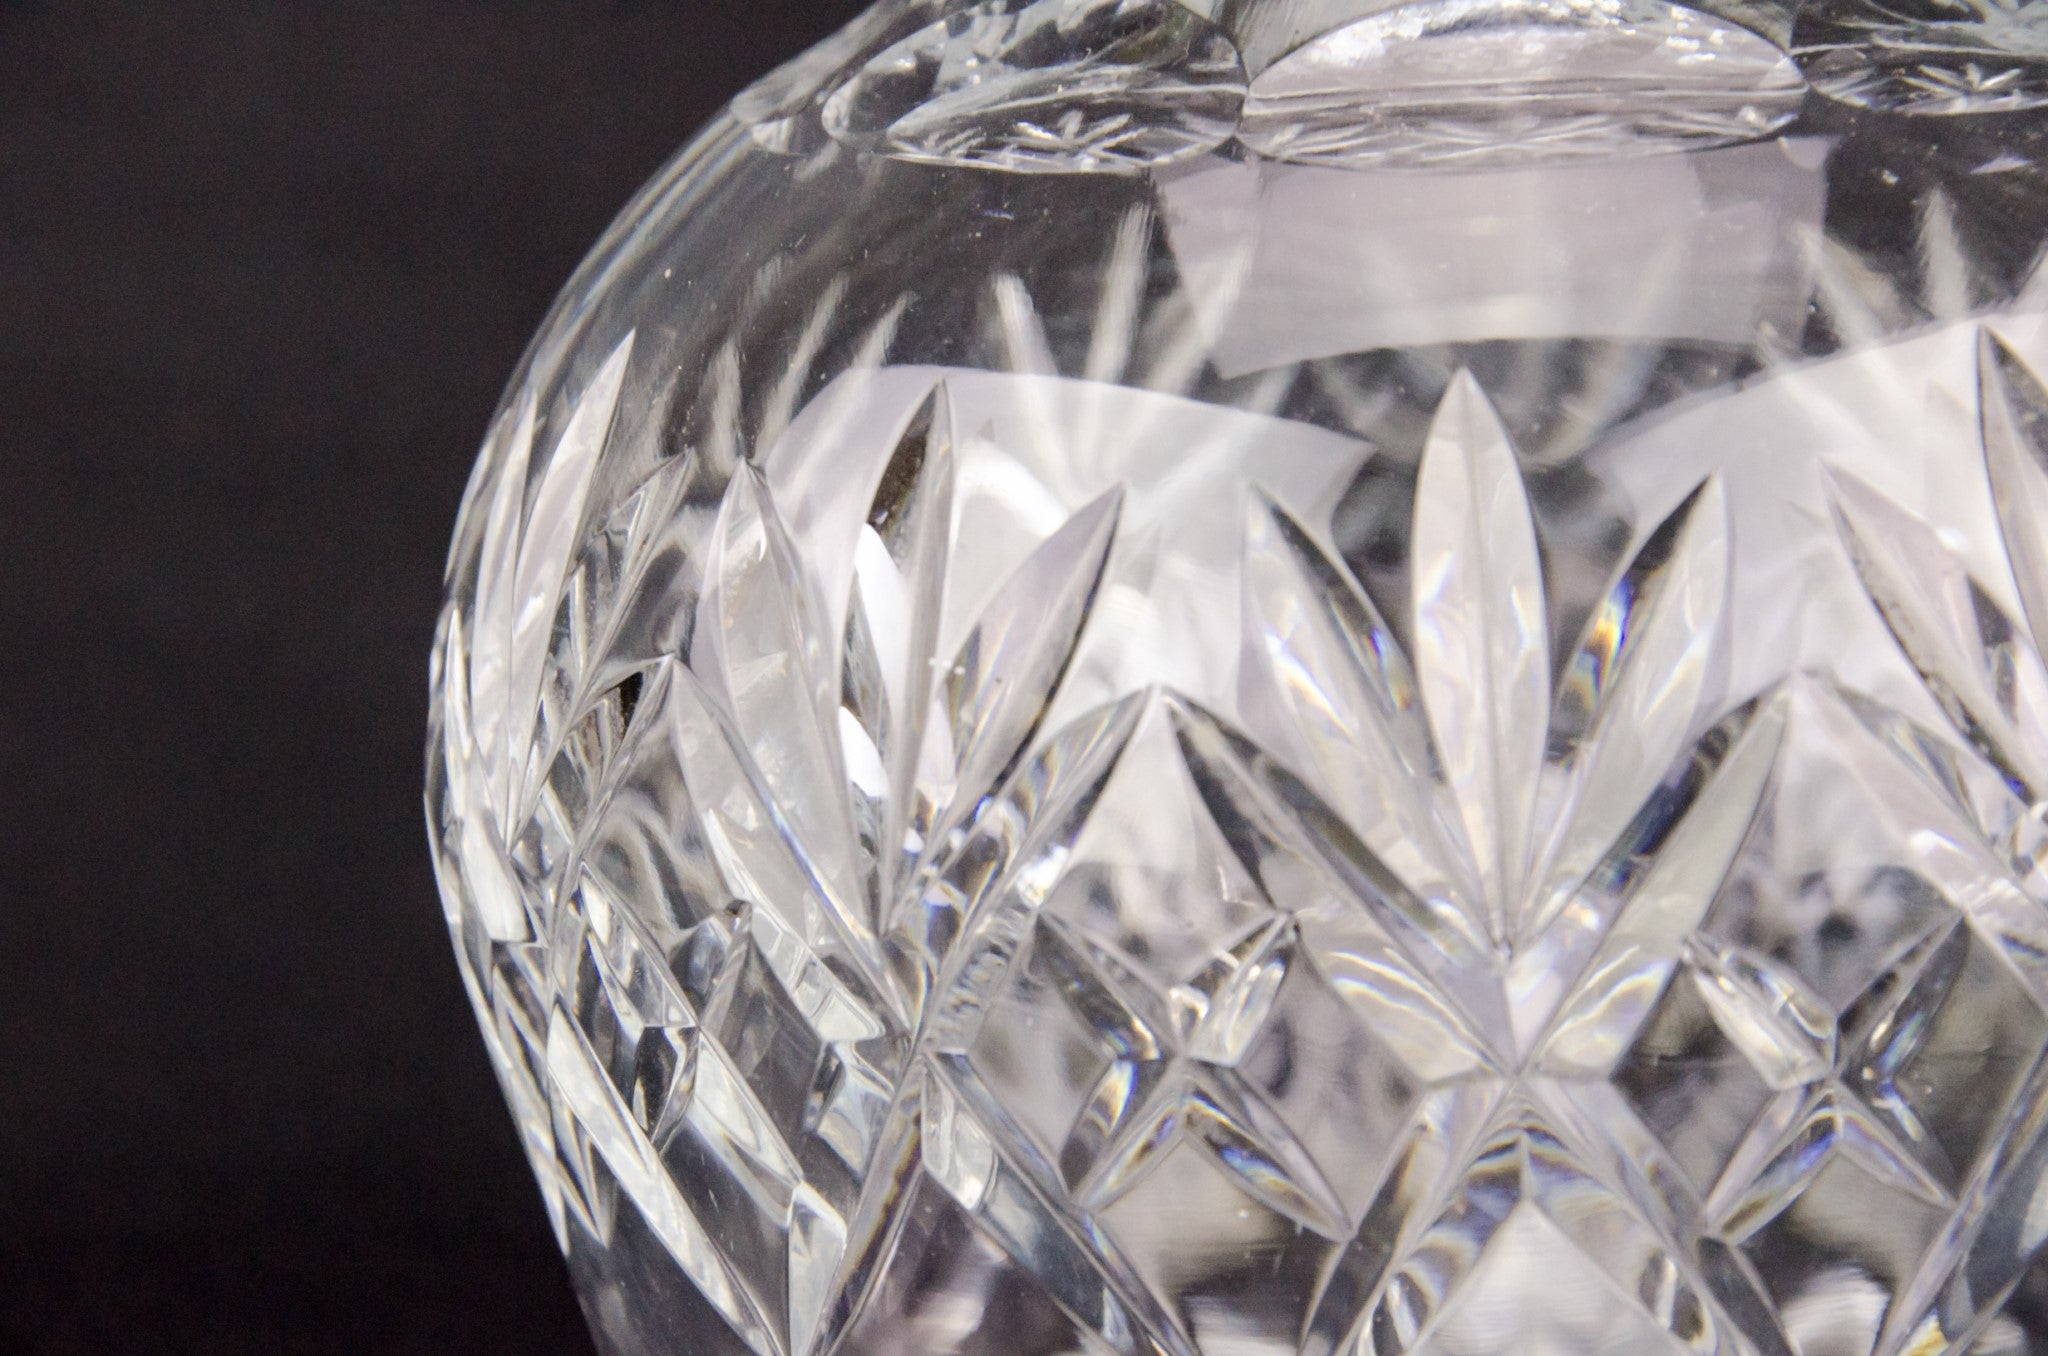 Cut glass globular decanter